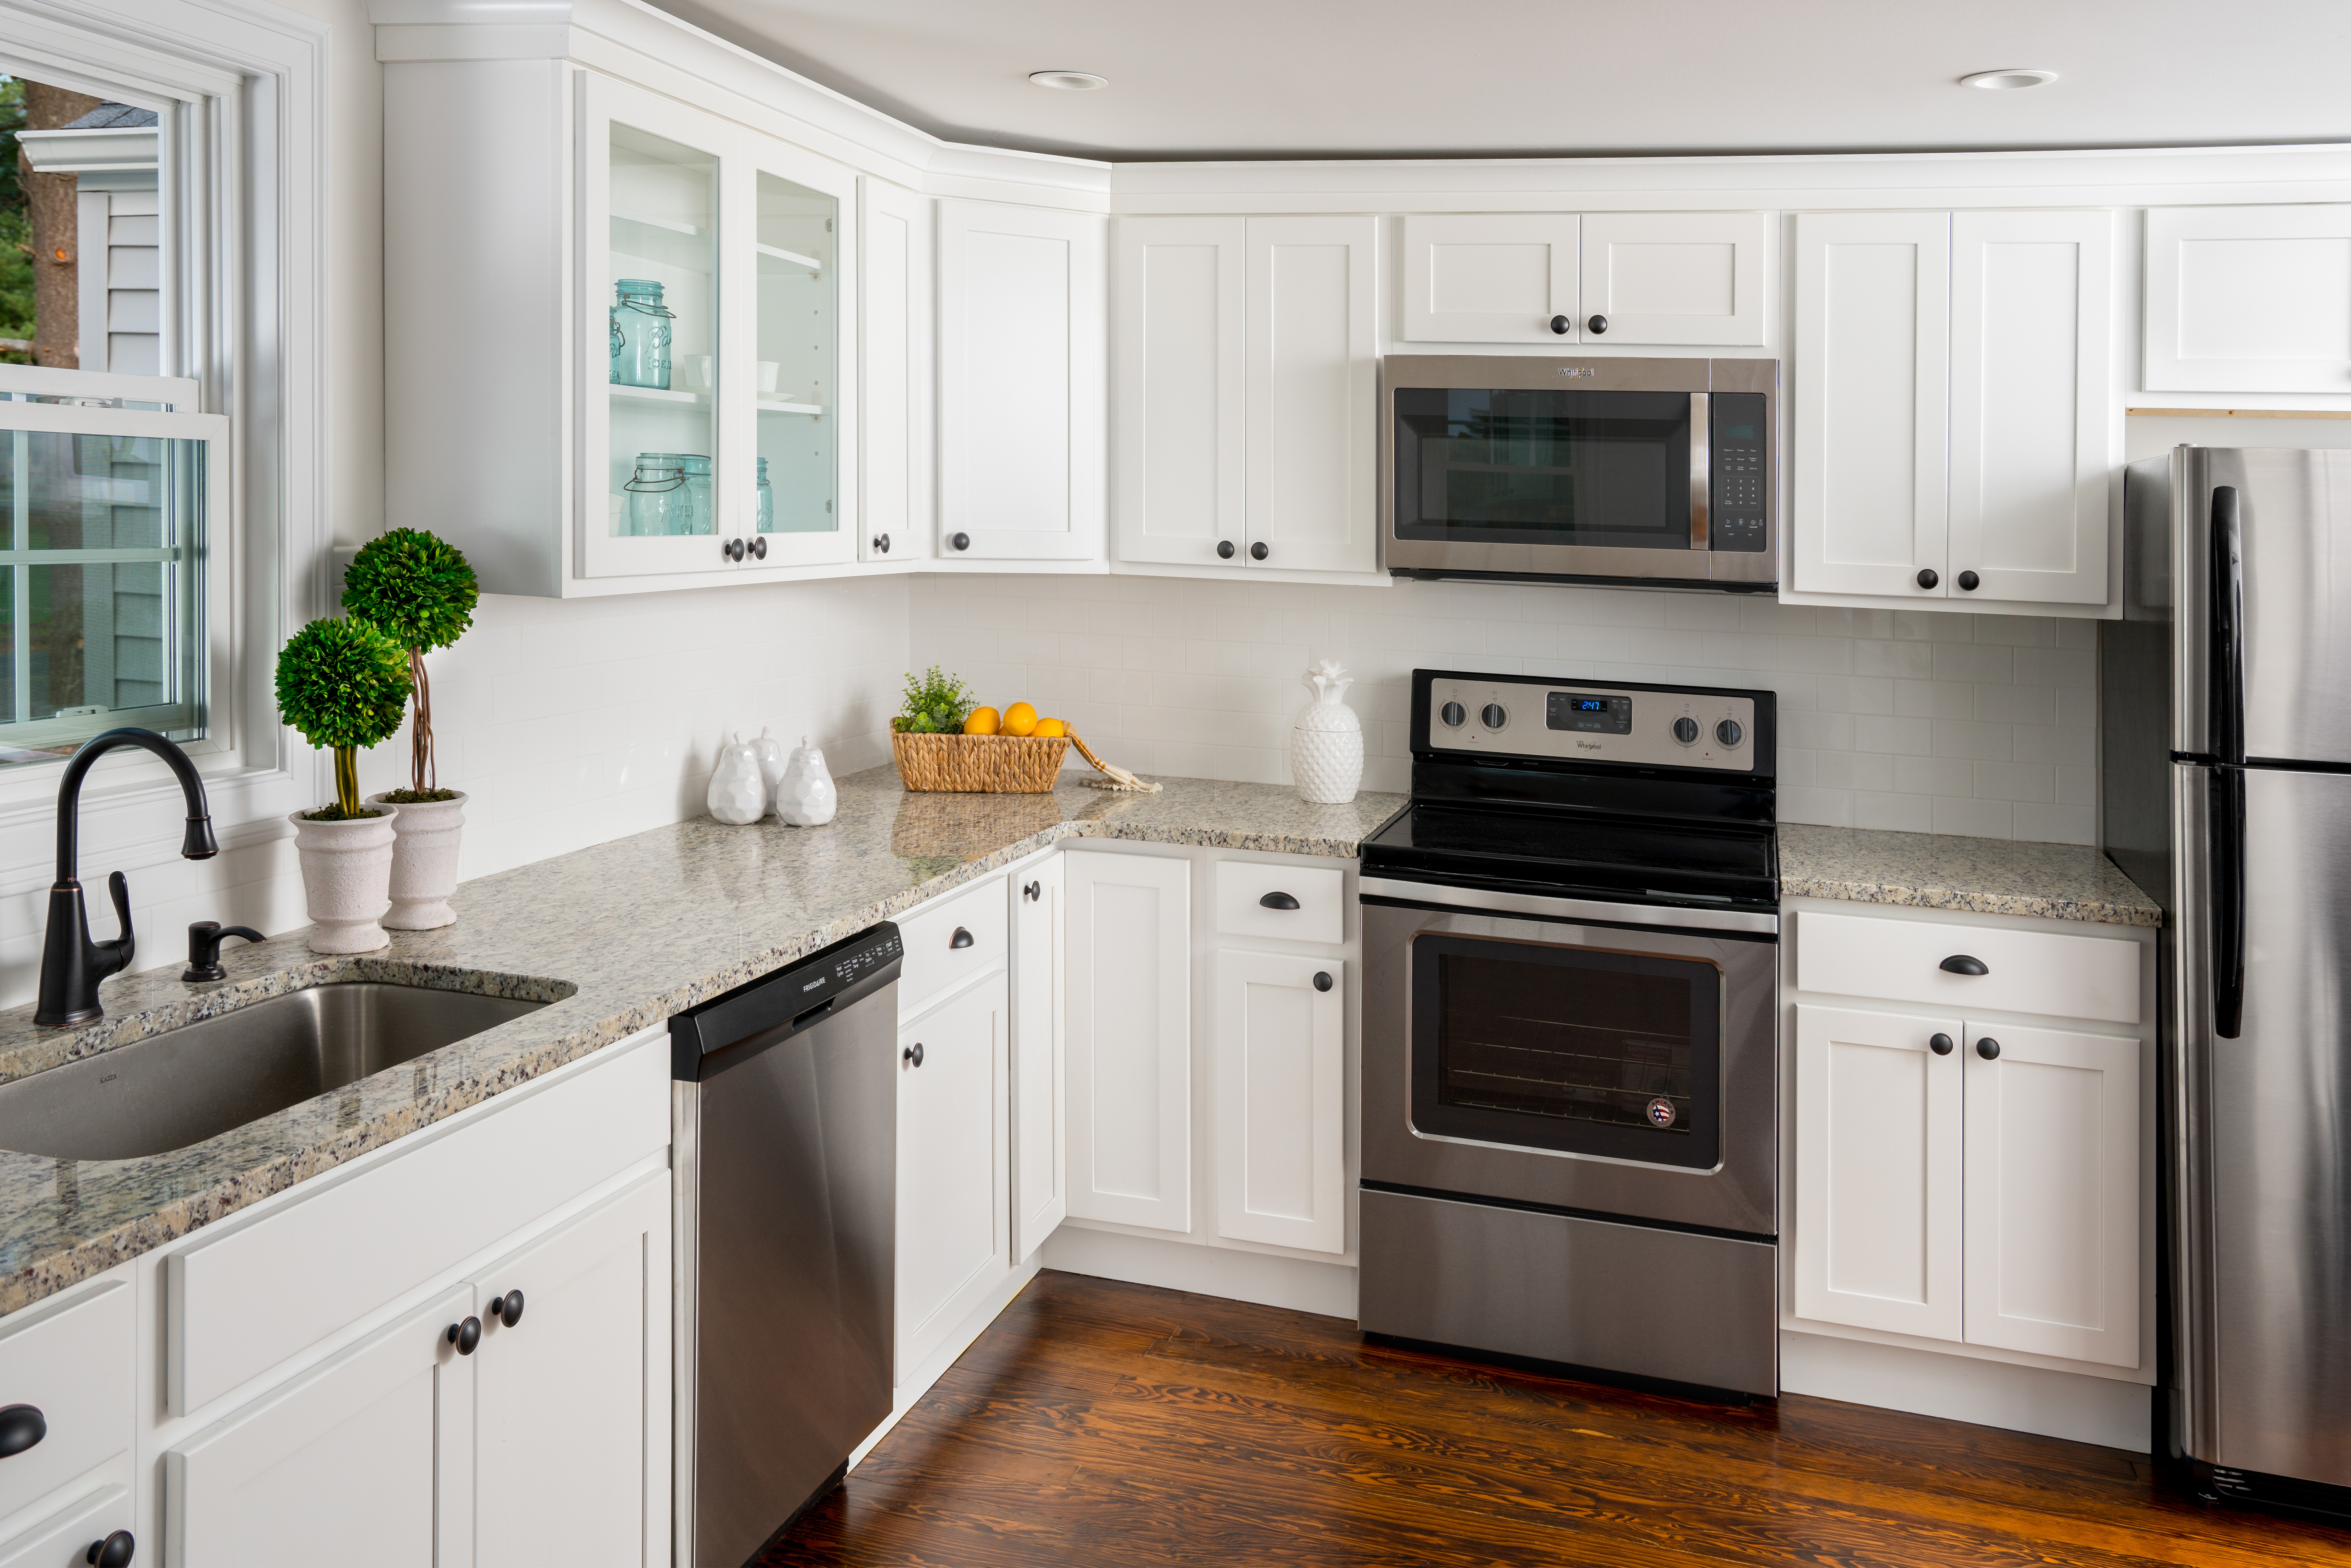 Ideas for kitchens  layout  design